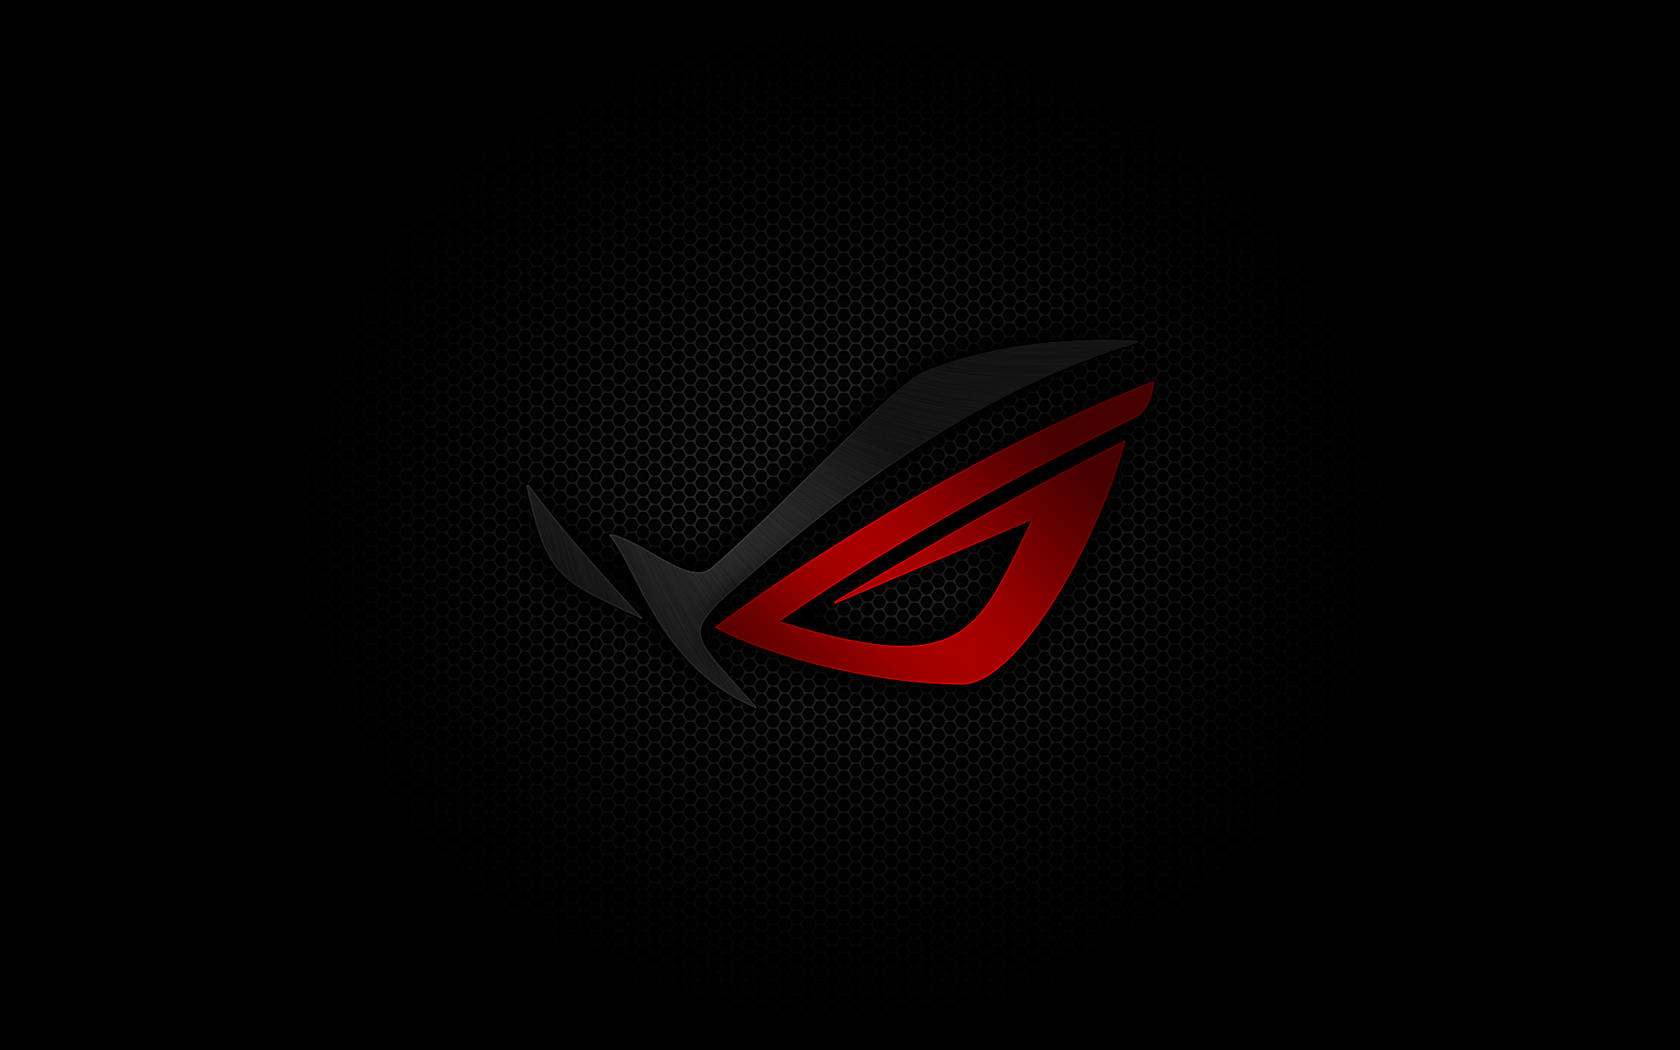 ASUS ROG Wallpaper Pack By BlaCkOuT1911